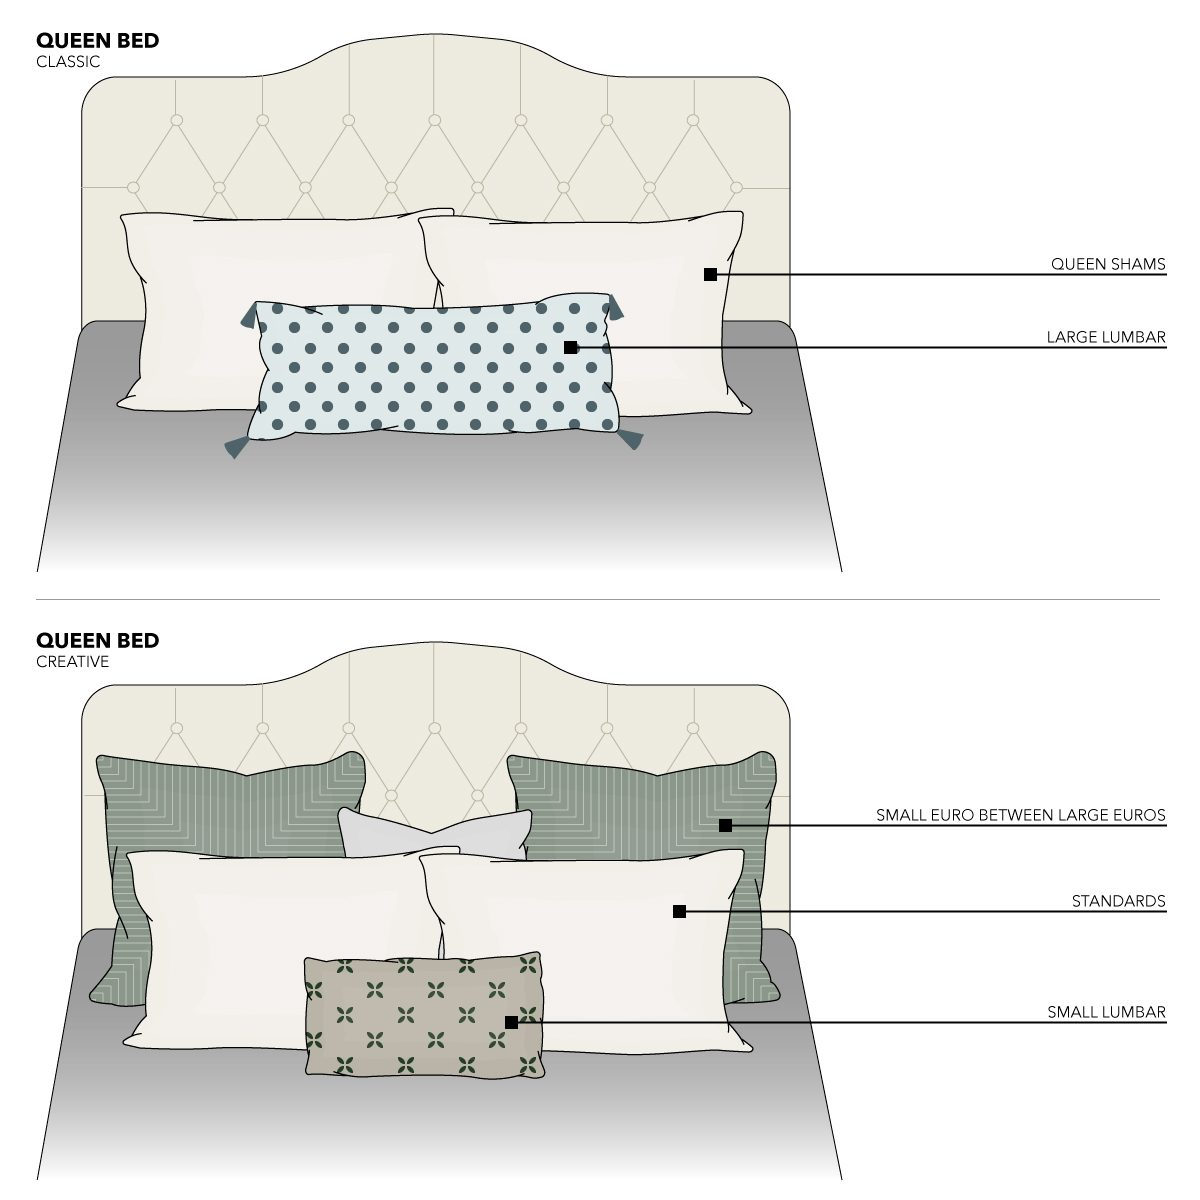 Pillow Arrangements for Queen Beds